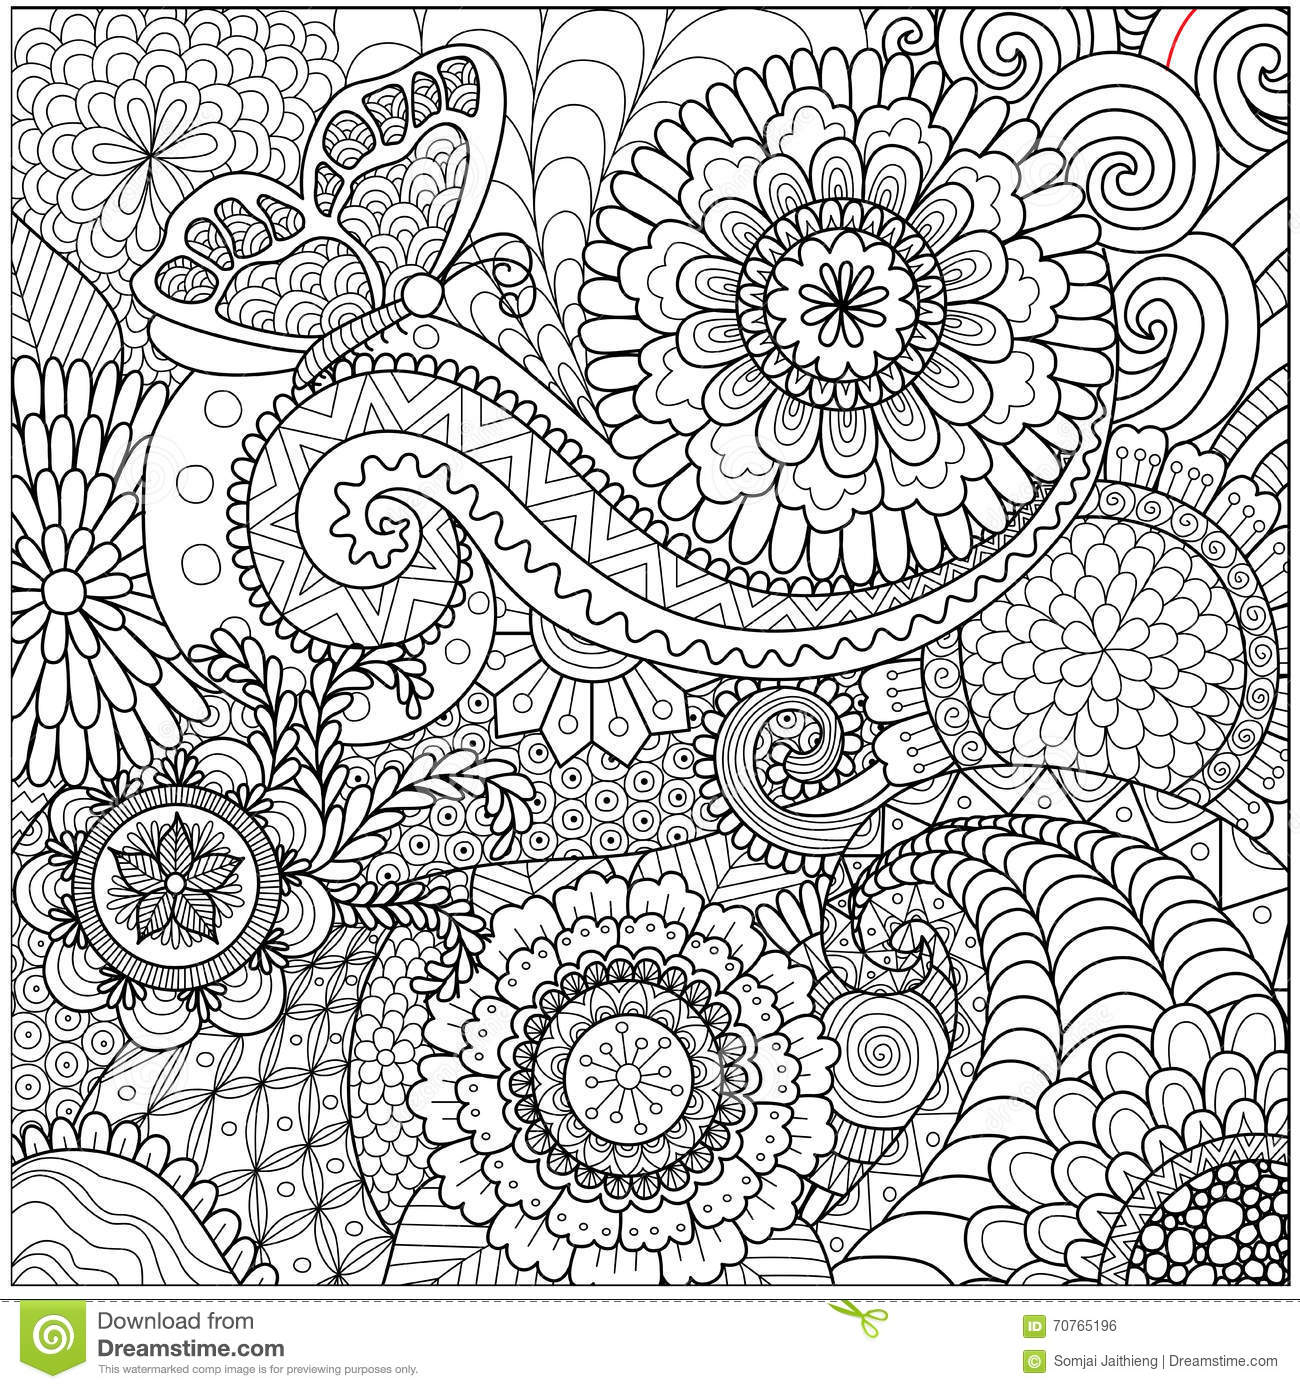 Coloring Pages Background Coloring Pages hand drawn zentangle floral background for coloring page stock page